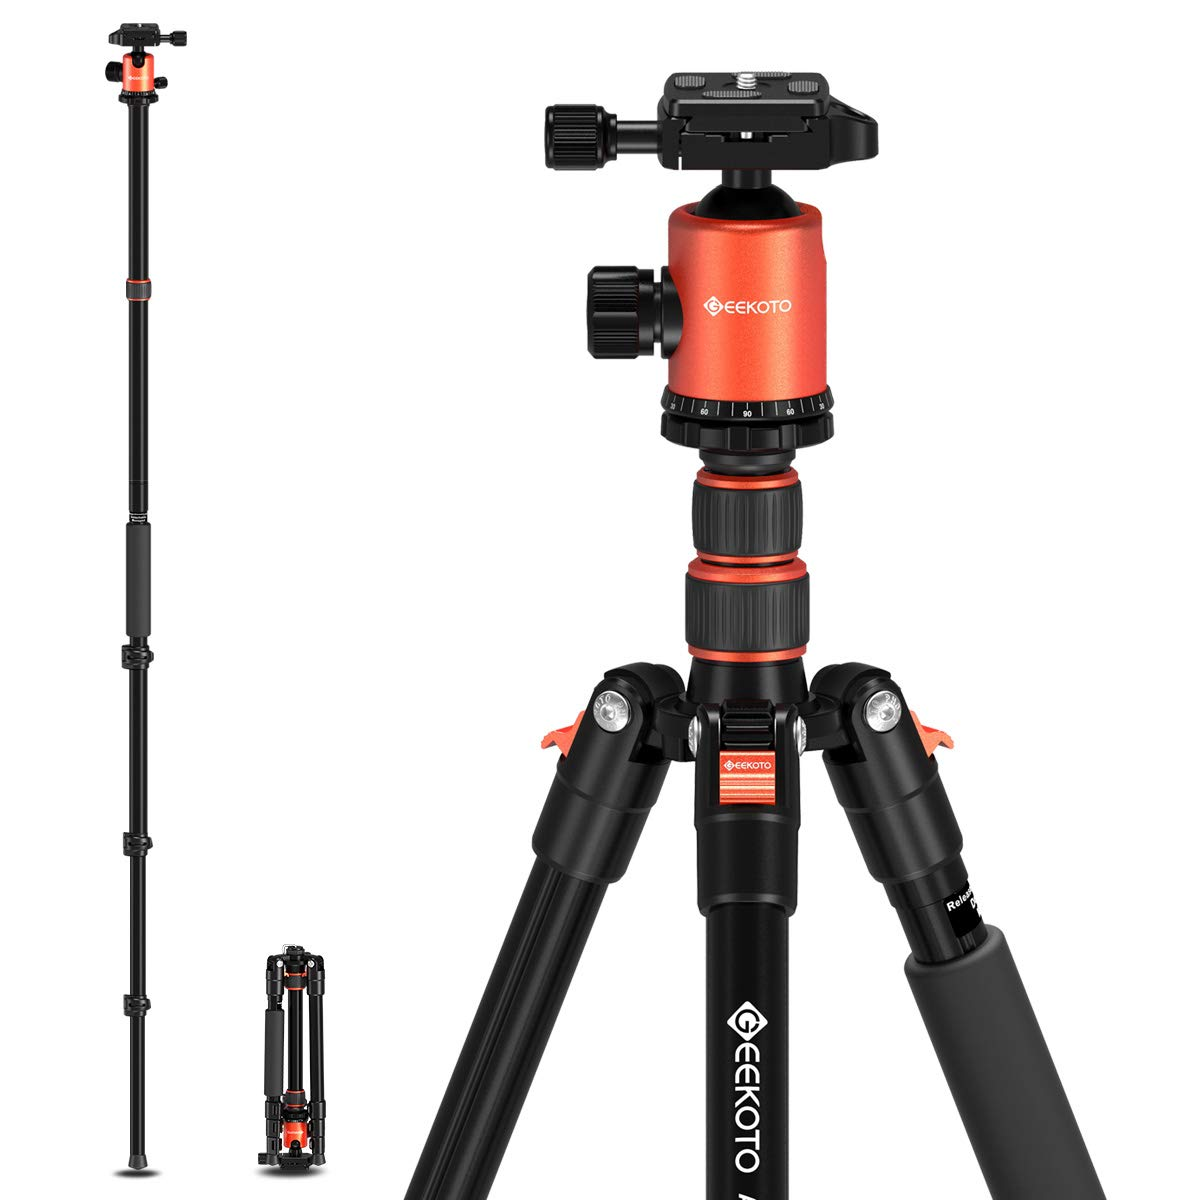 GEEKOTO 77'' Tripod, Camera Tripod for DSLR, Compact Aluminum Tripod with 360 Degree Ball Head and 8kgs Load for Travel and Work